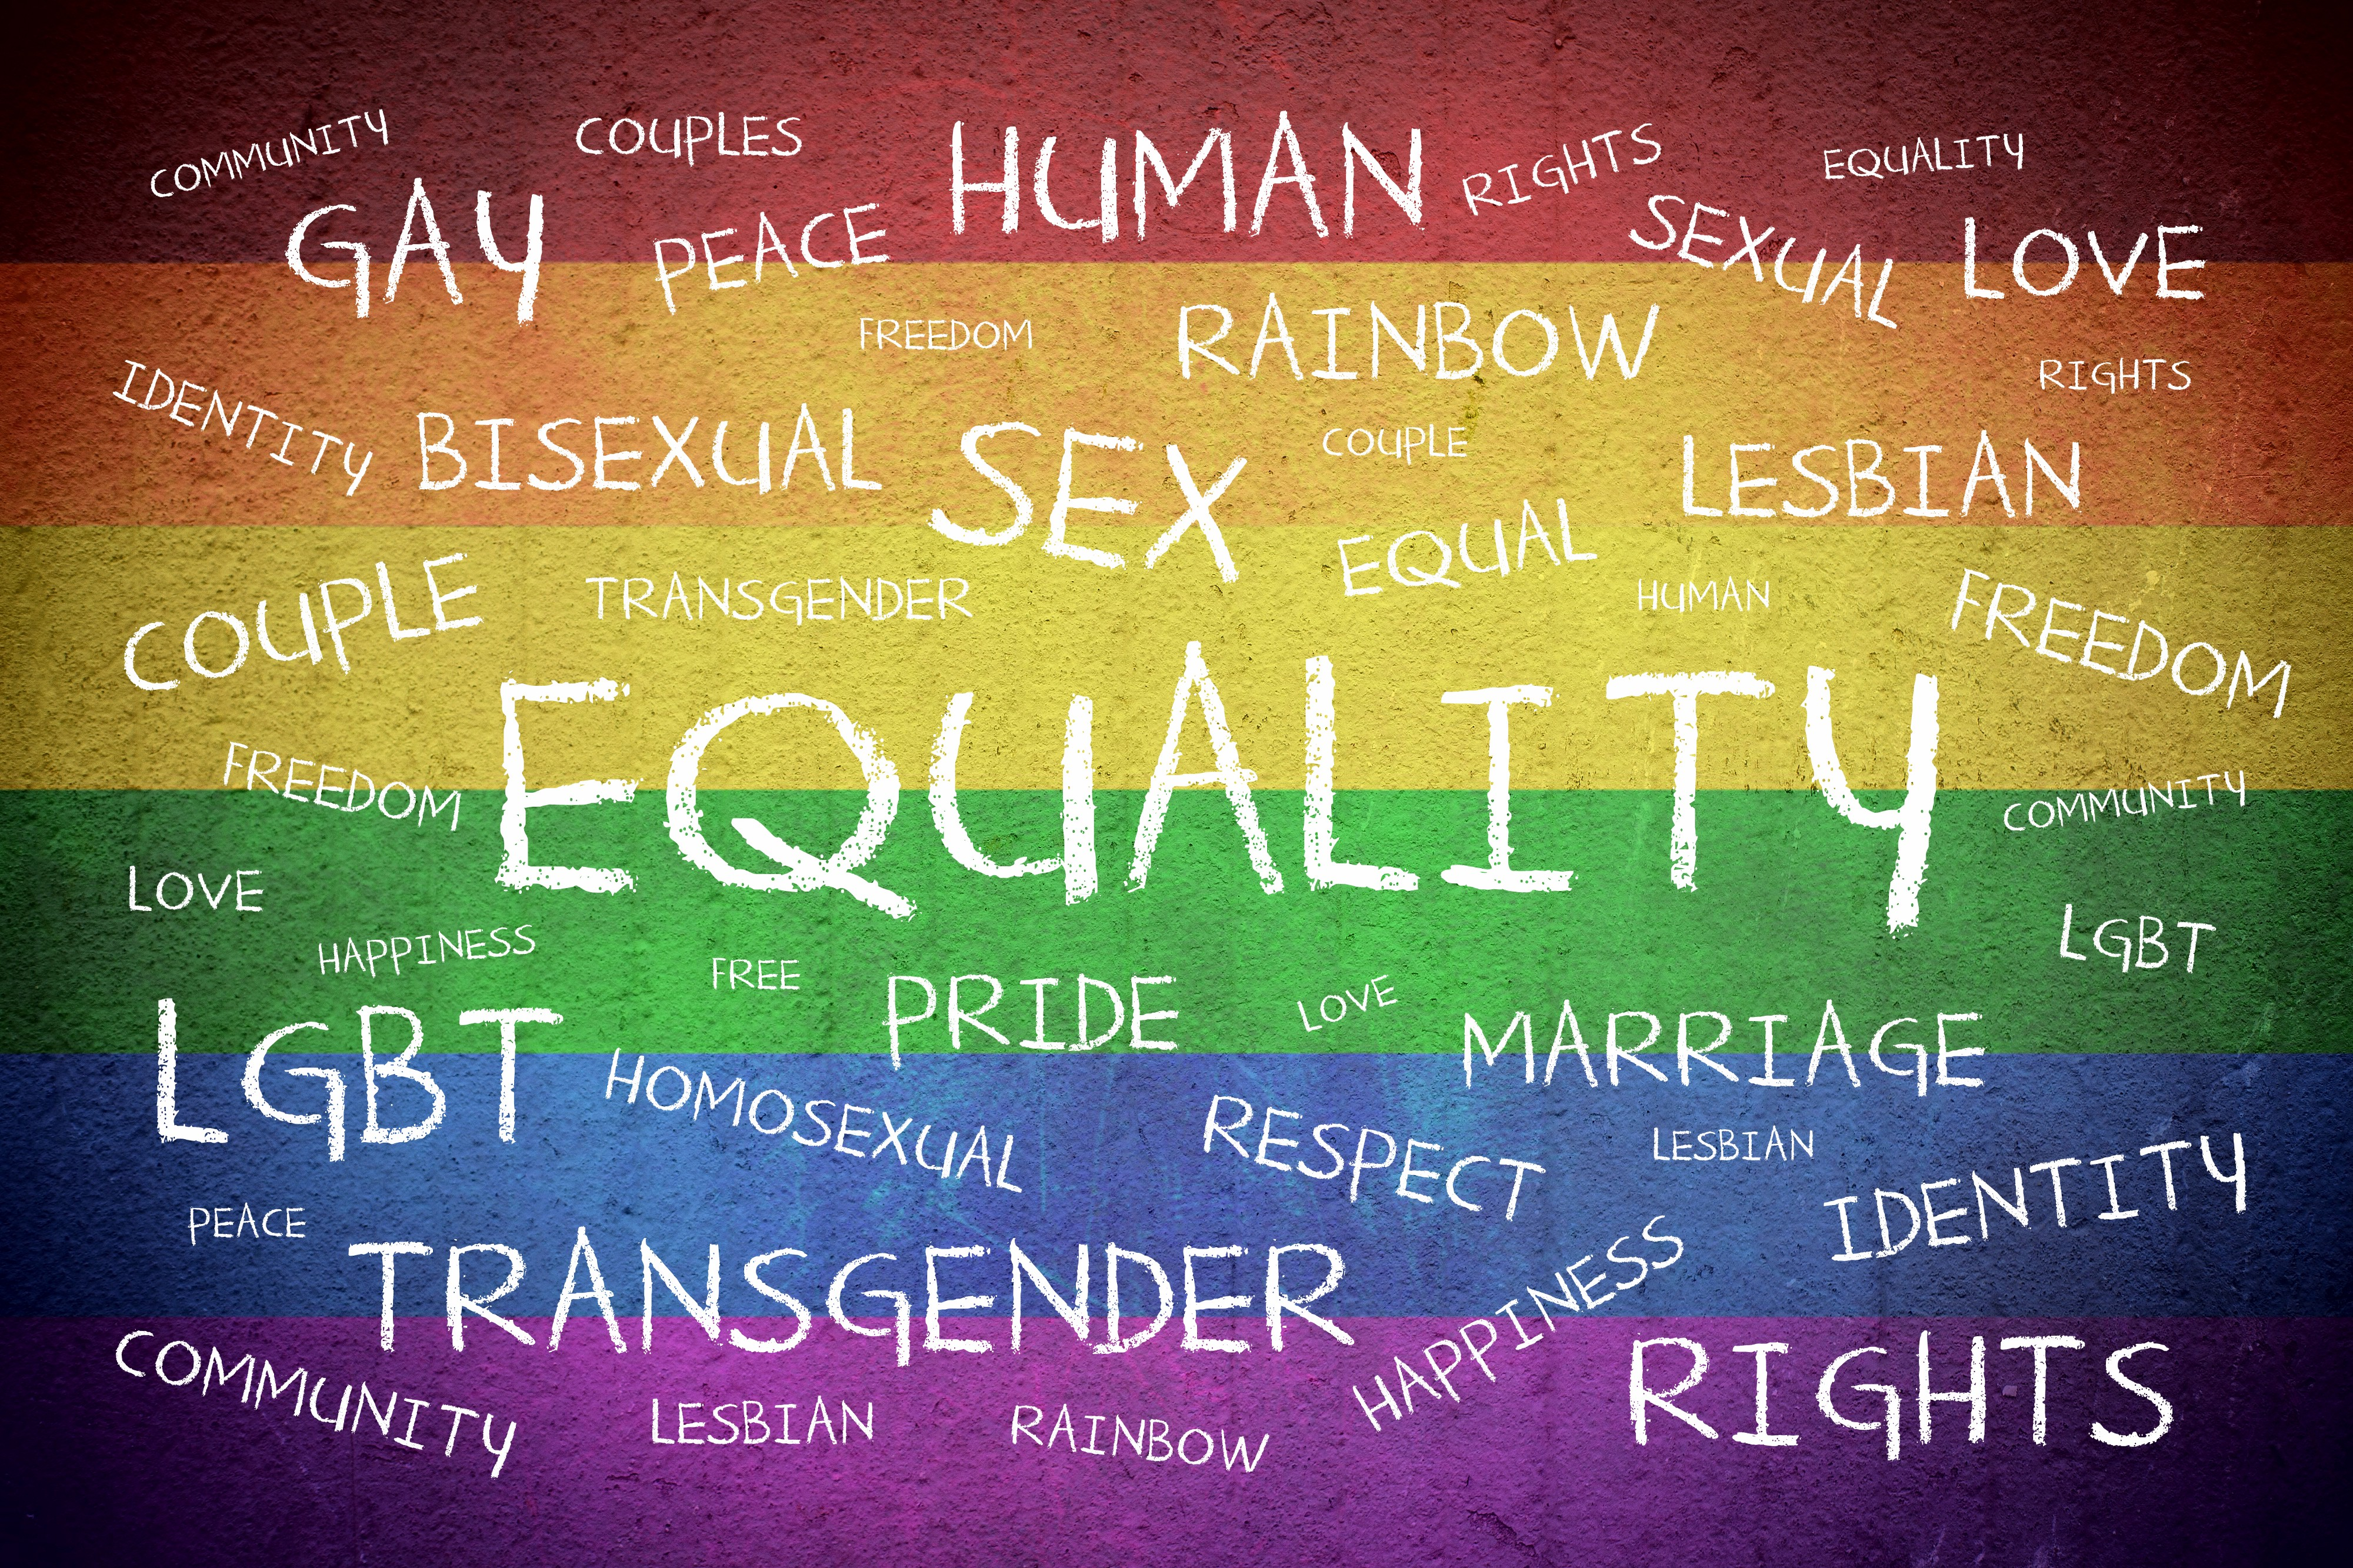 Word cloud with words related to sex, gender, and sexuality against the backdrop of a rainbow flag that is the LGBTQ flag.